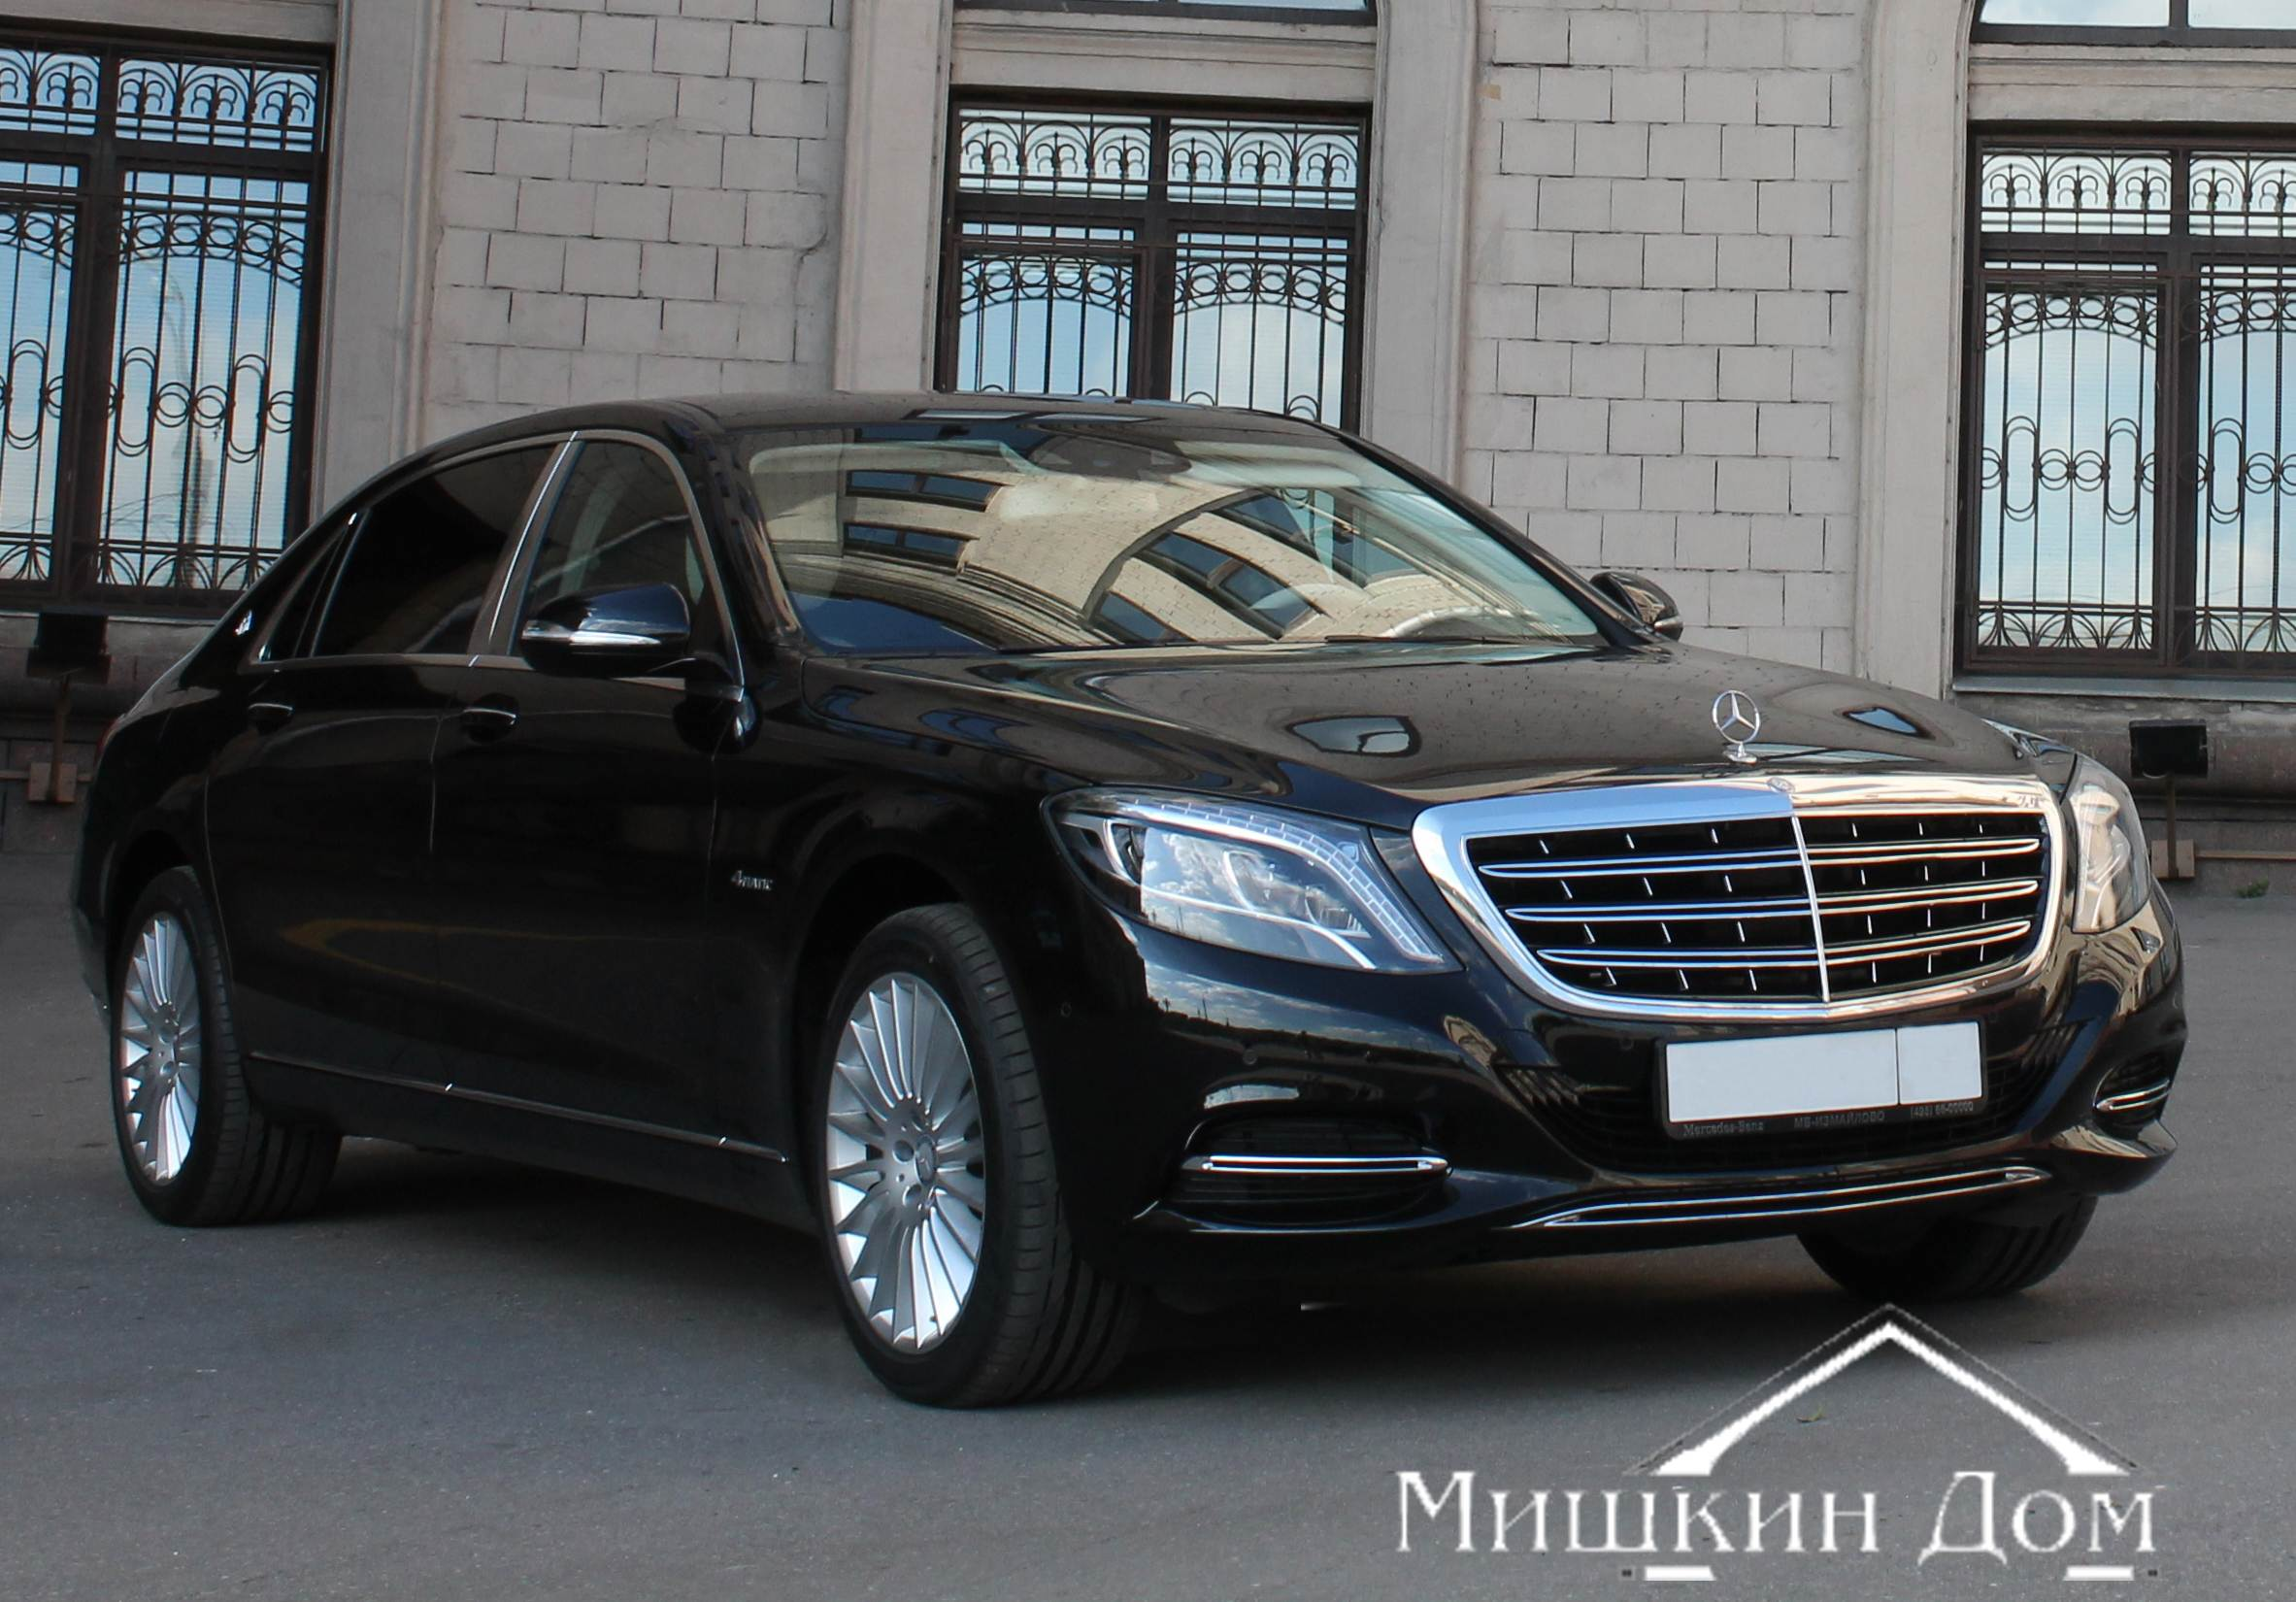 Mercedes-Maybach-S-klass трансфер в аэропорт